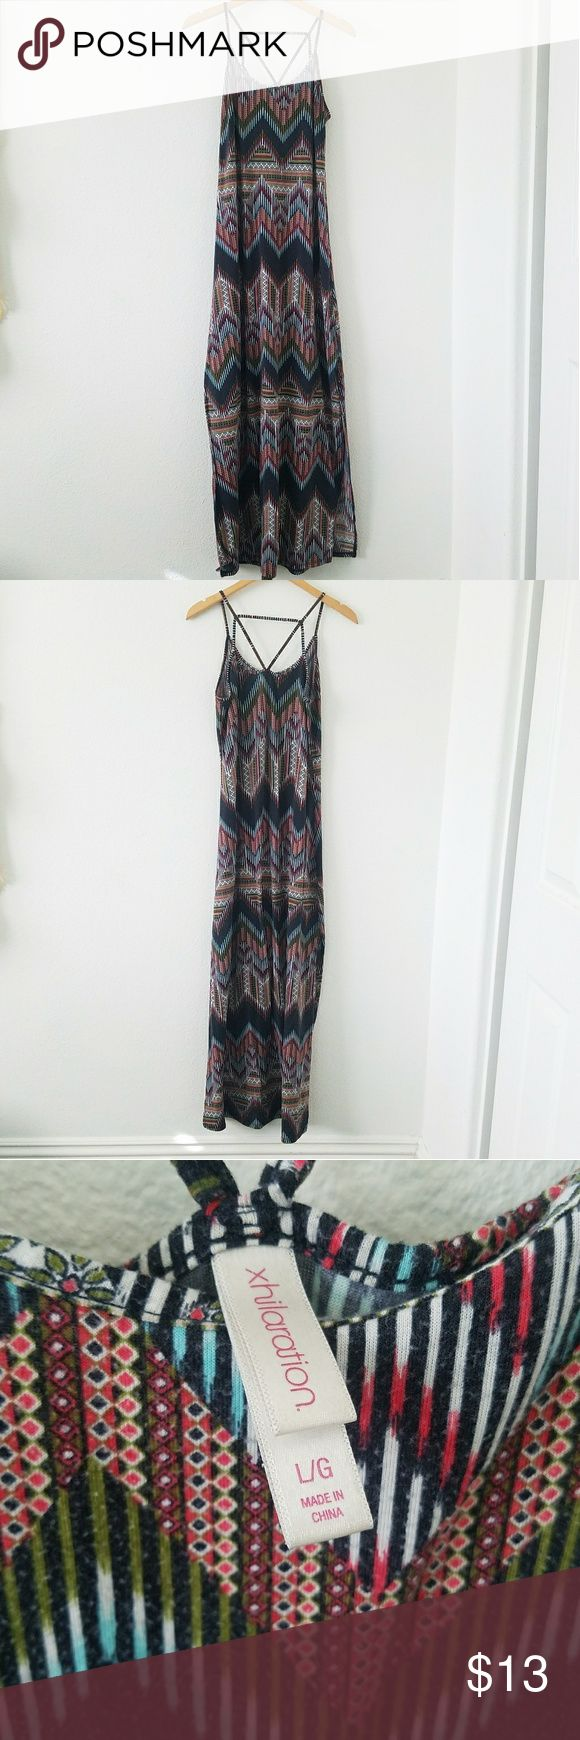 Tribal Maxi Dress This dress features beautiful tribal pattern, two long slits on the side and beautiful straps on the back. This dress is an overall good used condition. There is a lot of piling throughout the dress because of its material. Xhilaration Dresses Maxi